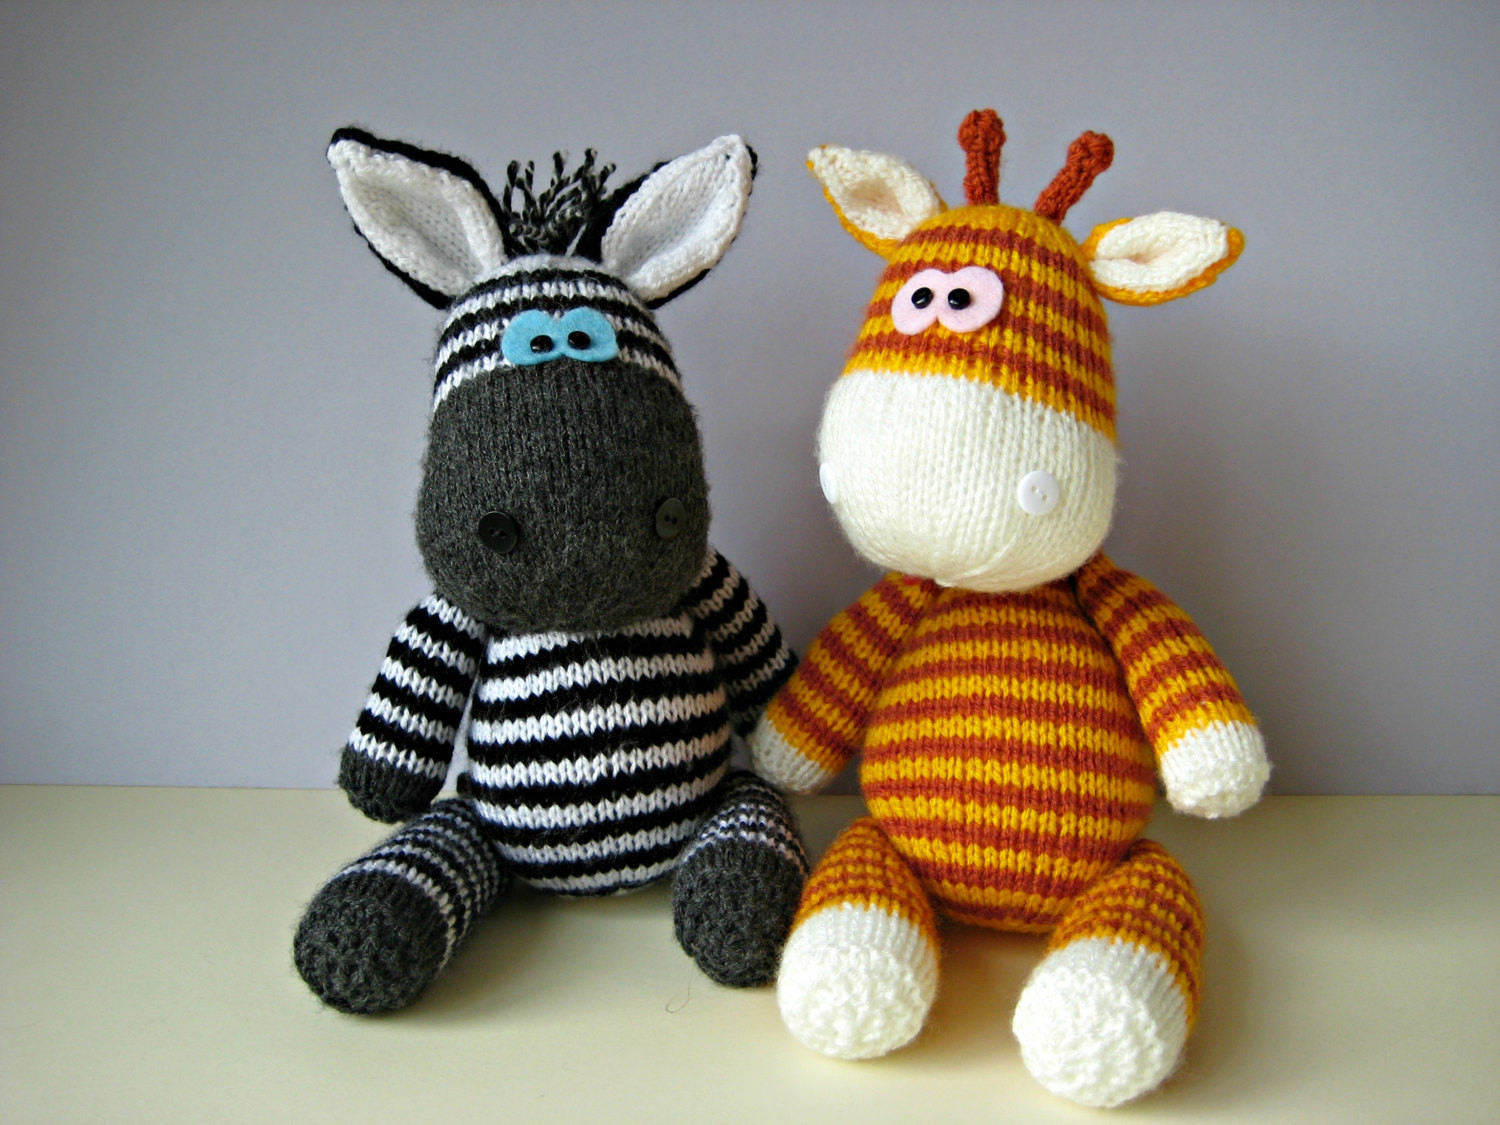 Knitting Patterns toys Lovely Gerry Giraffe and Ziggy Zebra toy Knitting Patterns Of Amazing 41 Models Knitting Patterns toys